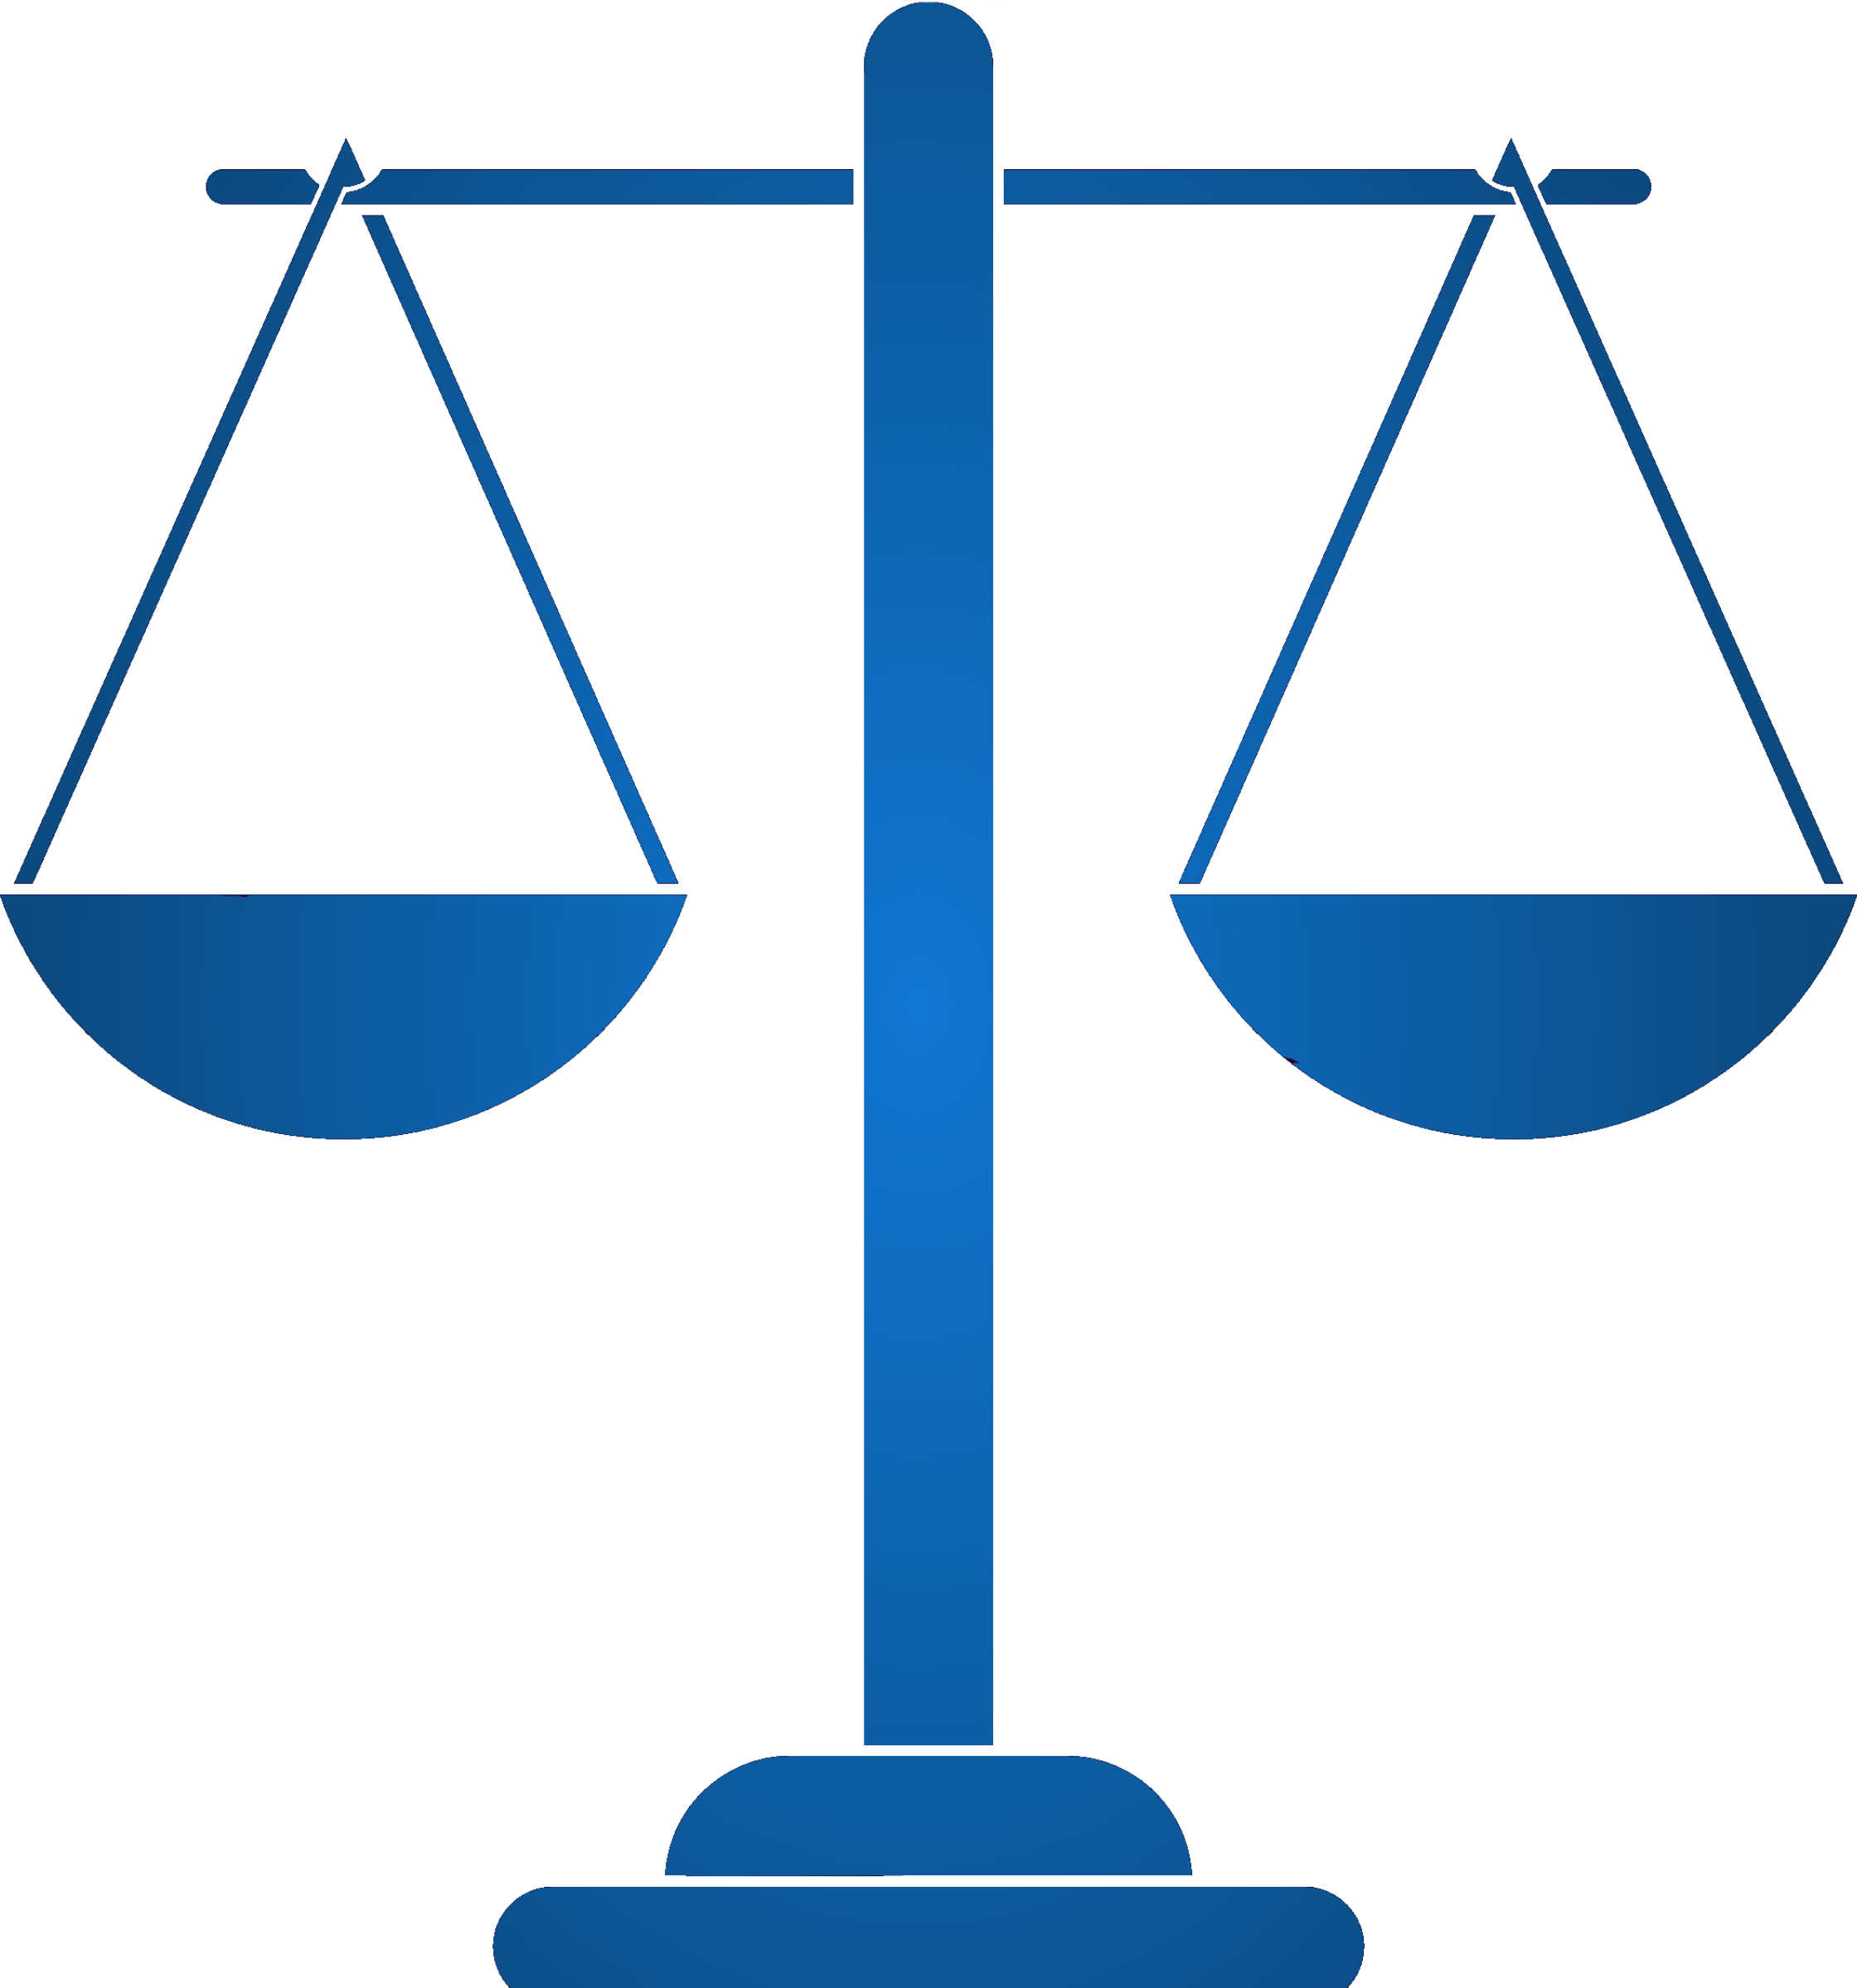 Remix of justice scales. Scale clipart electric